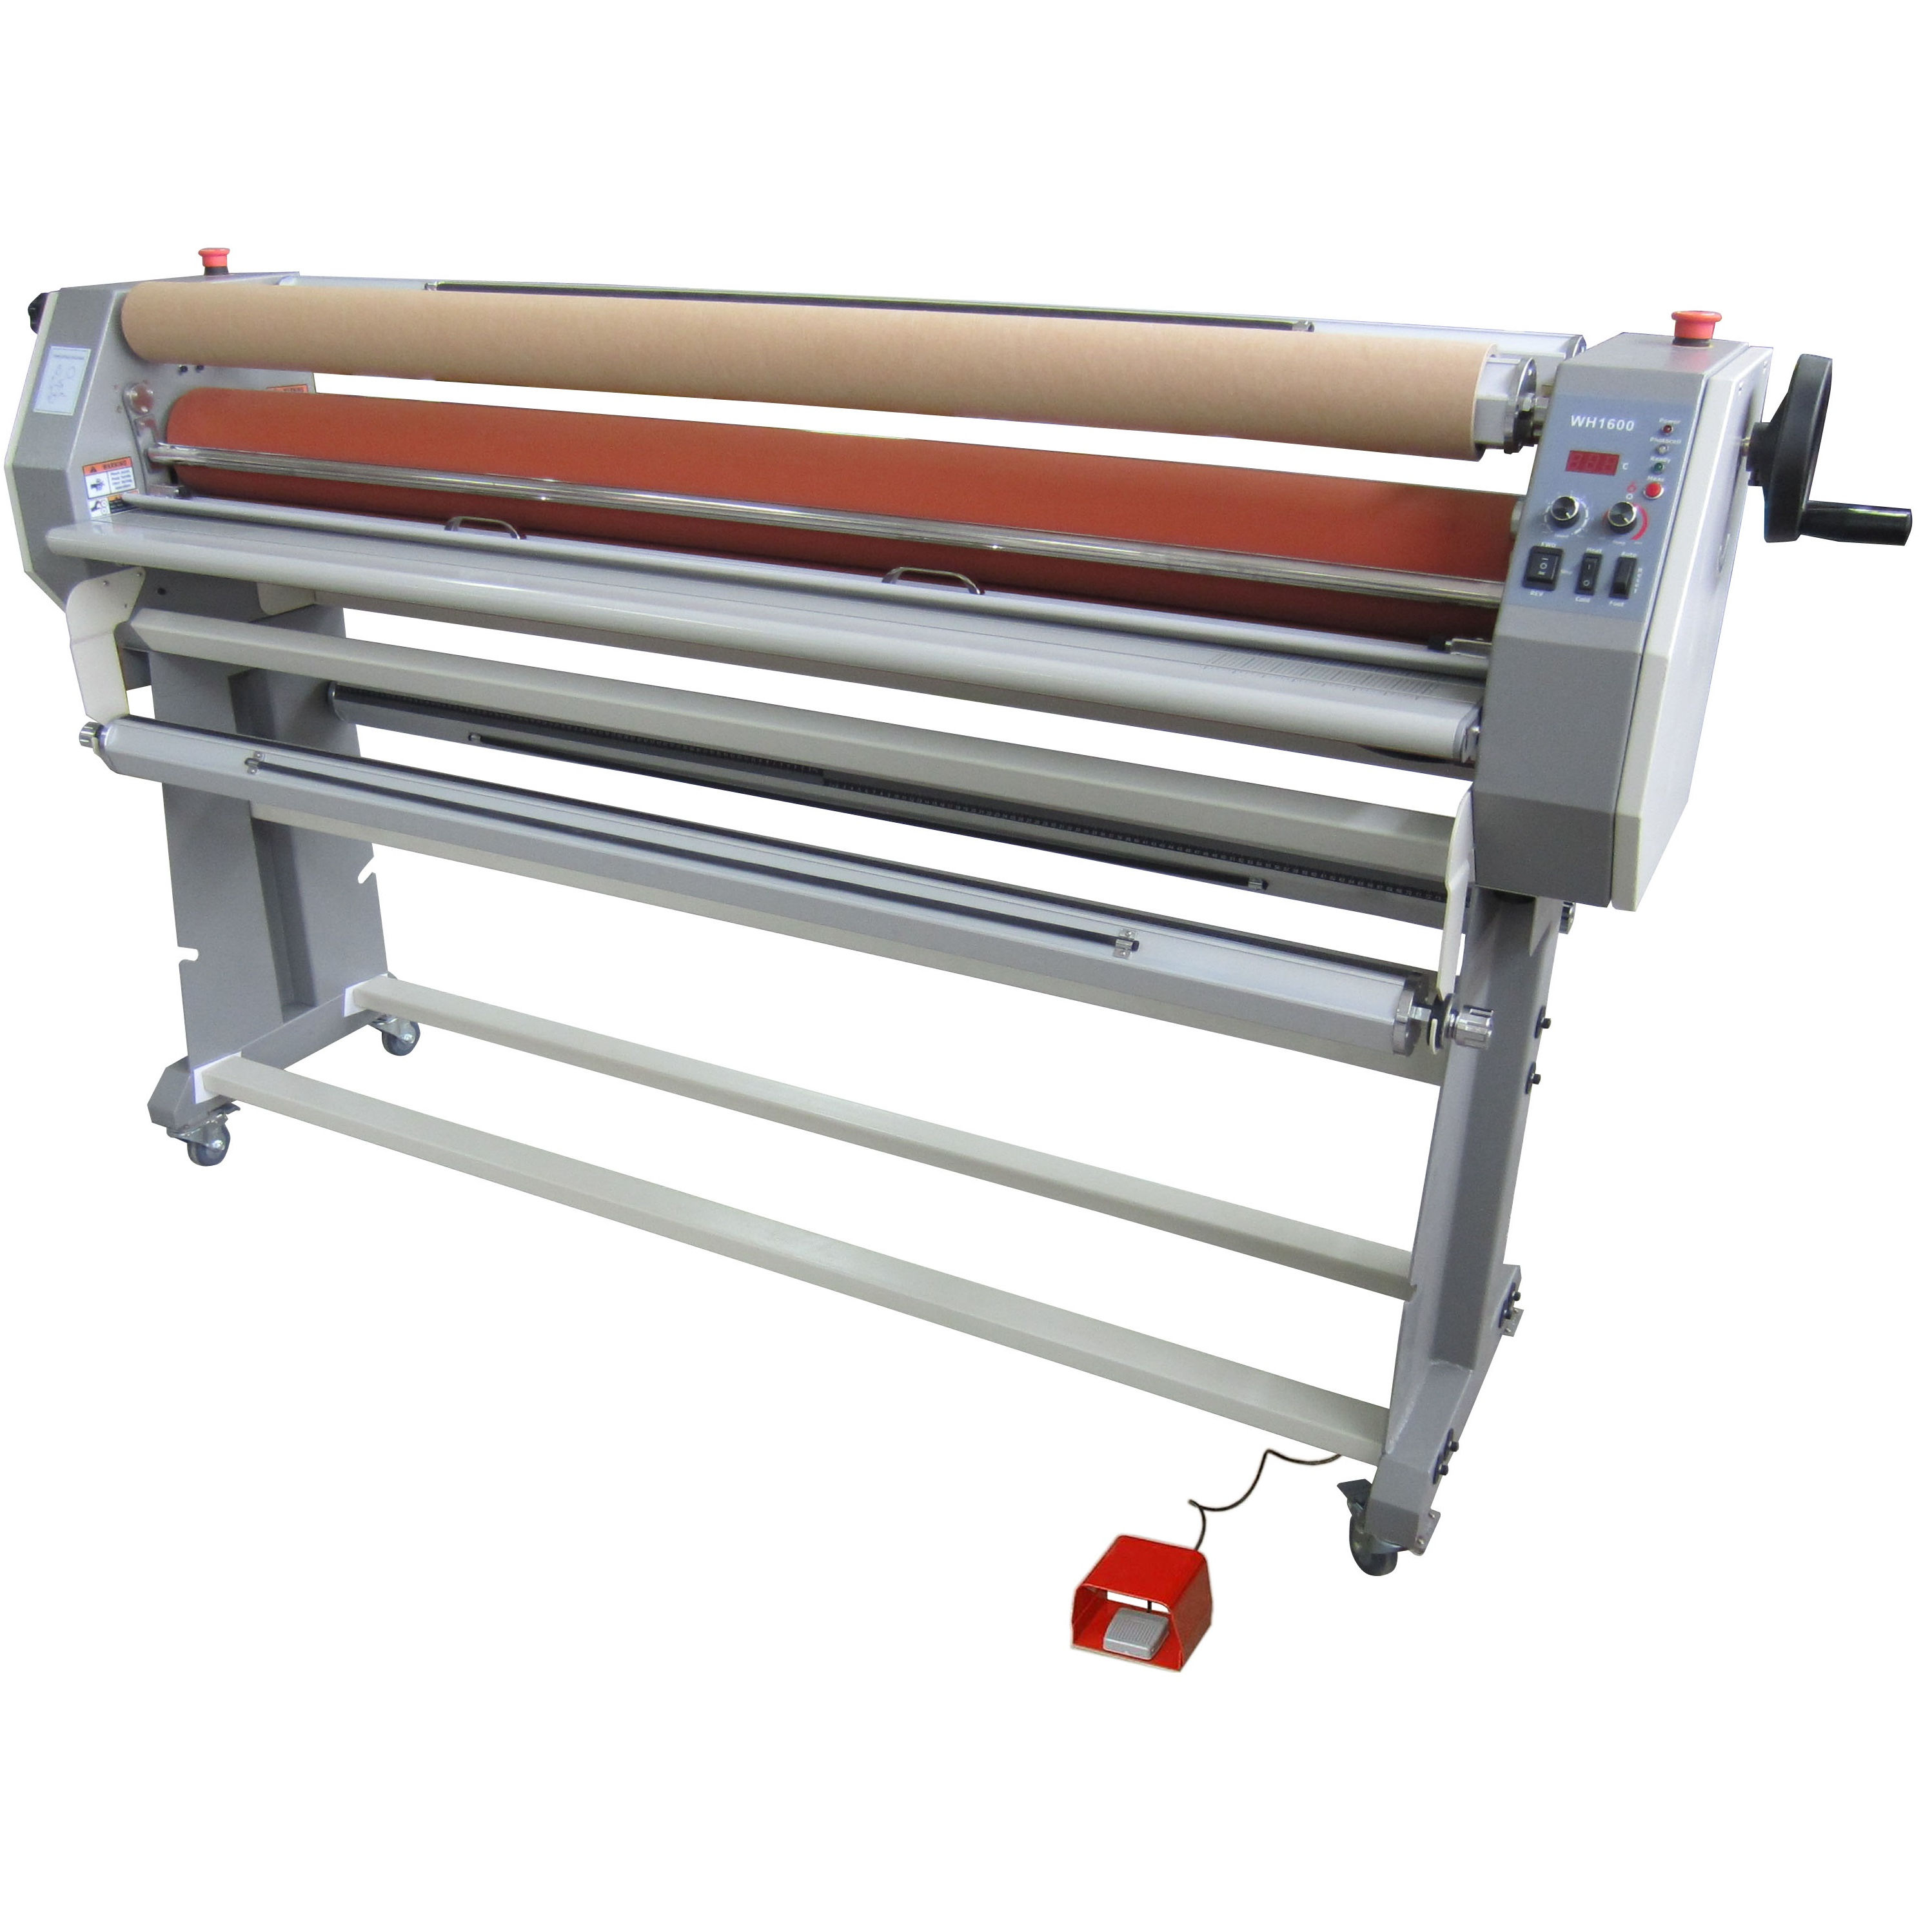 Roll to roll lamination machine wide format laminator top heated laminator 1600